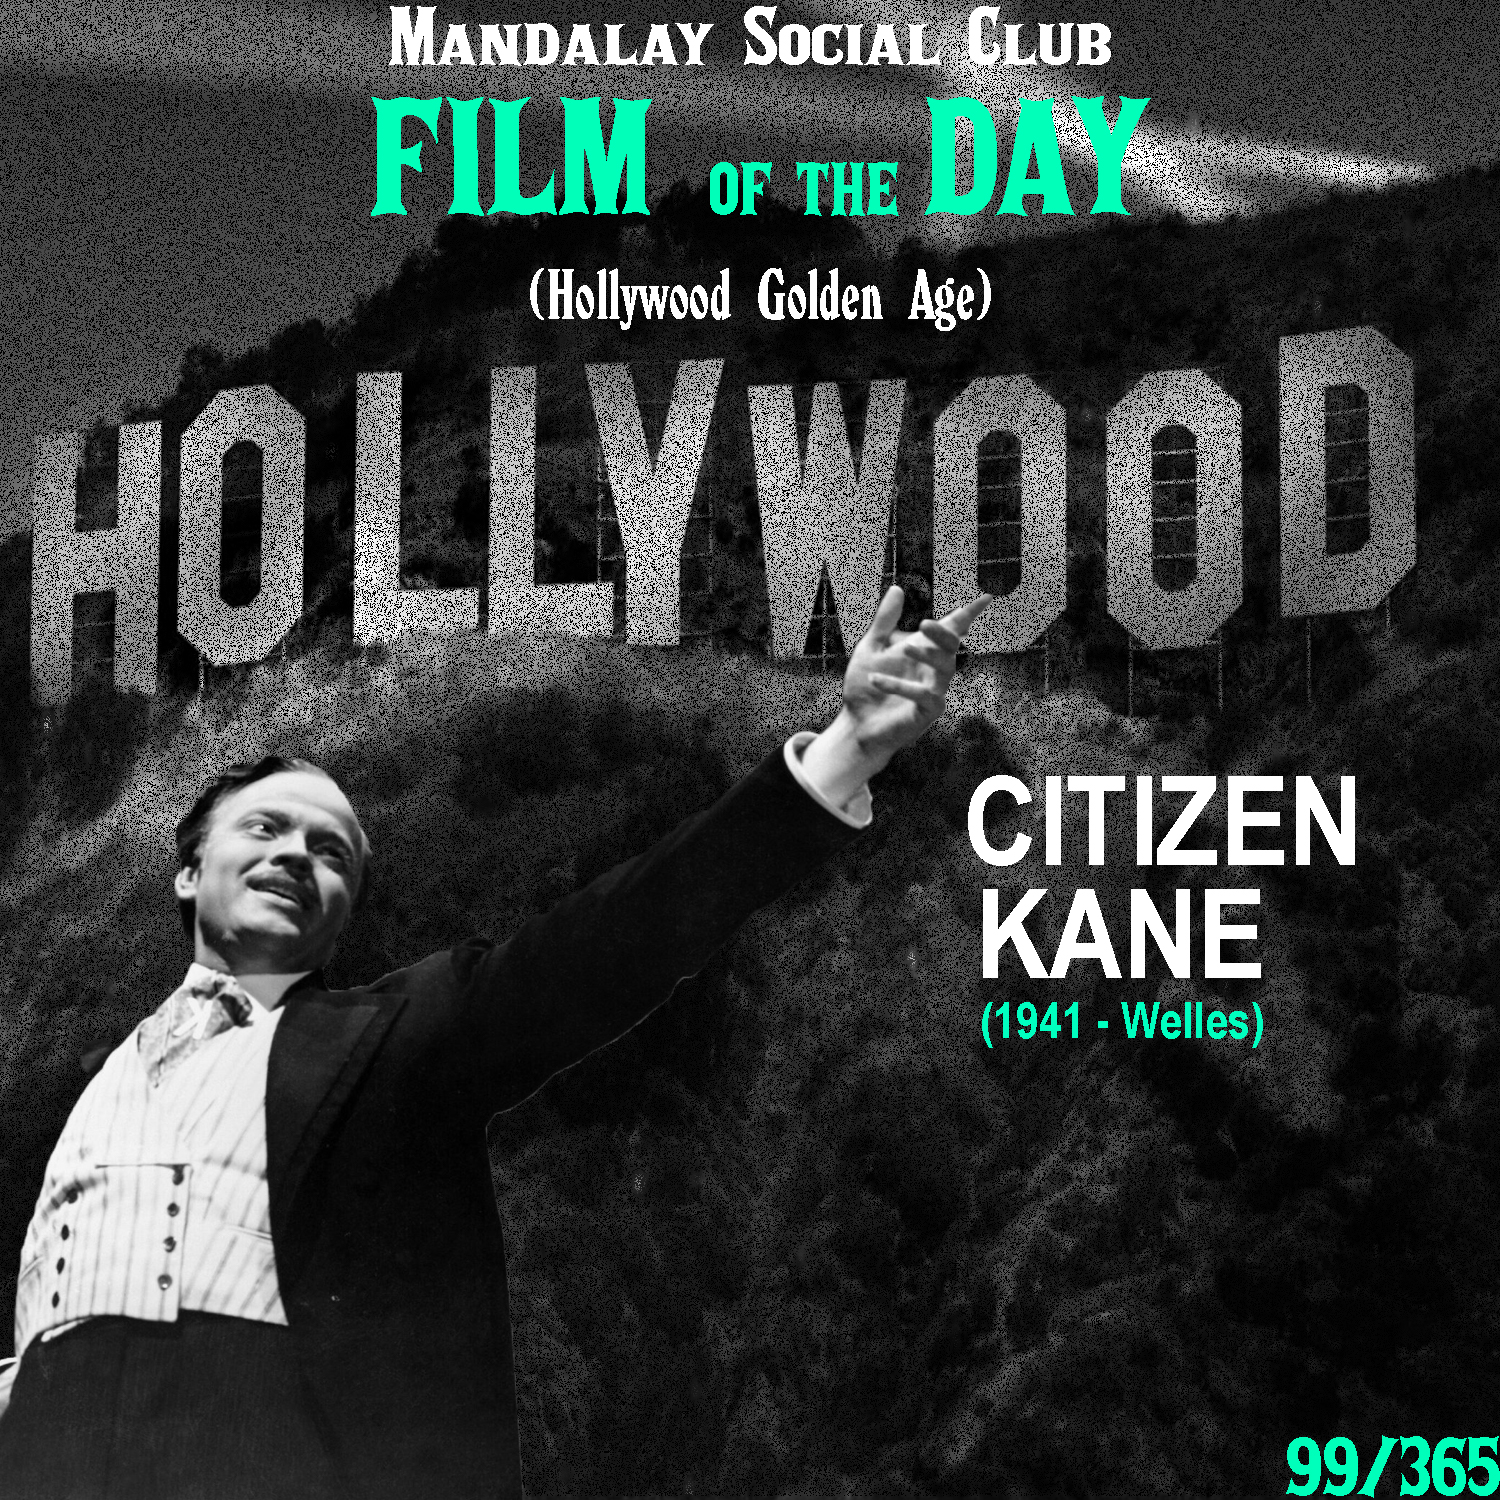 "Citizen Kane     (dir. Orson Welles)   Orson Welles' masterpiece of a debut is consistently ranked as one of the greatest films to ever be made.  Citizen Kane  has stood the test of time and as it nears it's 80th anniversary in just a couple of years, it's still a beautiful representation of how a trailblazing auteur ought to make films.   Citizen Kane  is the story of Charles Foster Kane, a newspaper tycoon who's constantly testing the reach of his power. Sent off to live with Mr. Thatcher, a powerful banker, young Charles Kane is to be educated so he can properly manage the funds set aside for him in a trust that he will then access when he turns 25. The whole film is told in a flashback structure from the POV of a current newspaper trying to run a story on the meaning behind Kane's famous last words: ""Rosebud.""   Citizen Kane  has been held in such high regard for many years thanks to Welles daring willingness to break all the traditional rules of cinema, and through the process, create his own language with the camera. Through the use of his storytelling and visual literacy, Welles innovated and in turn created new 'rules' for aspiring filmmakers everywhere. Although  Citizen Kane  was heavily slept on upon it's release, French critic Andre Bazin brought it back to the mainstream's attention for a critical re-evaluation in the mid 50's. Now, it's practically undisputed that  Citizen Kane  is the work of a true genius.    5/5     WATCH: iTunes"